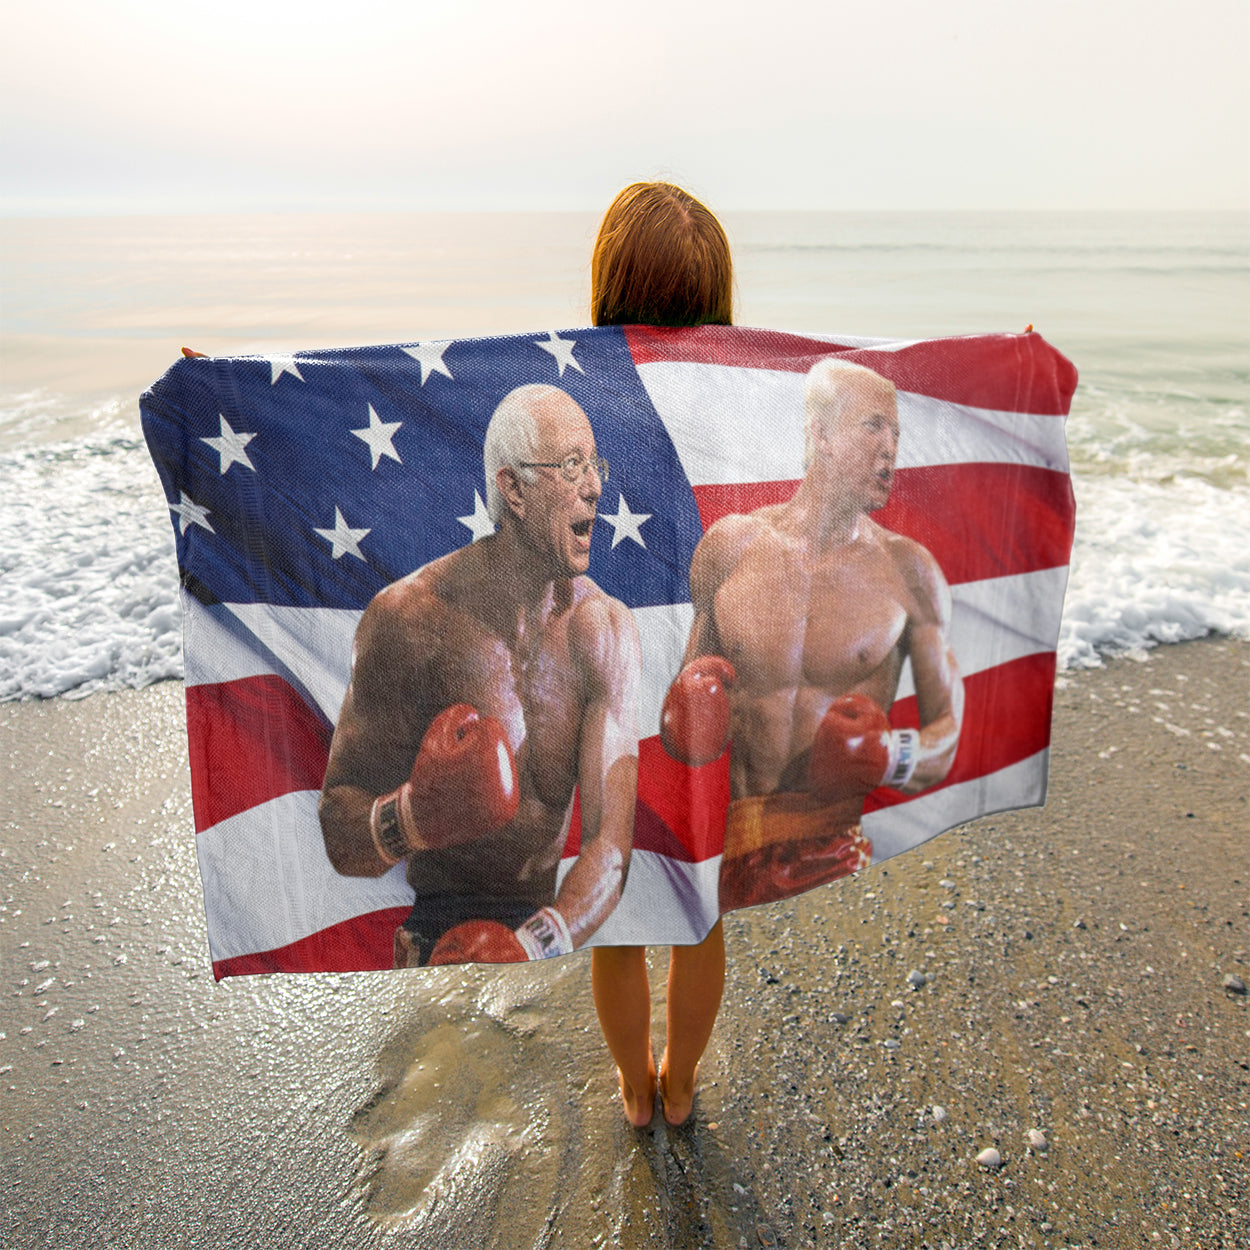 Politics - Bernie Sanders punching Trump Beach Towel - 37x74